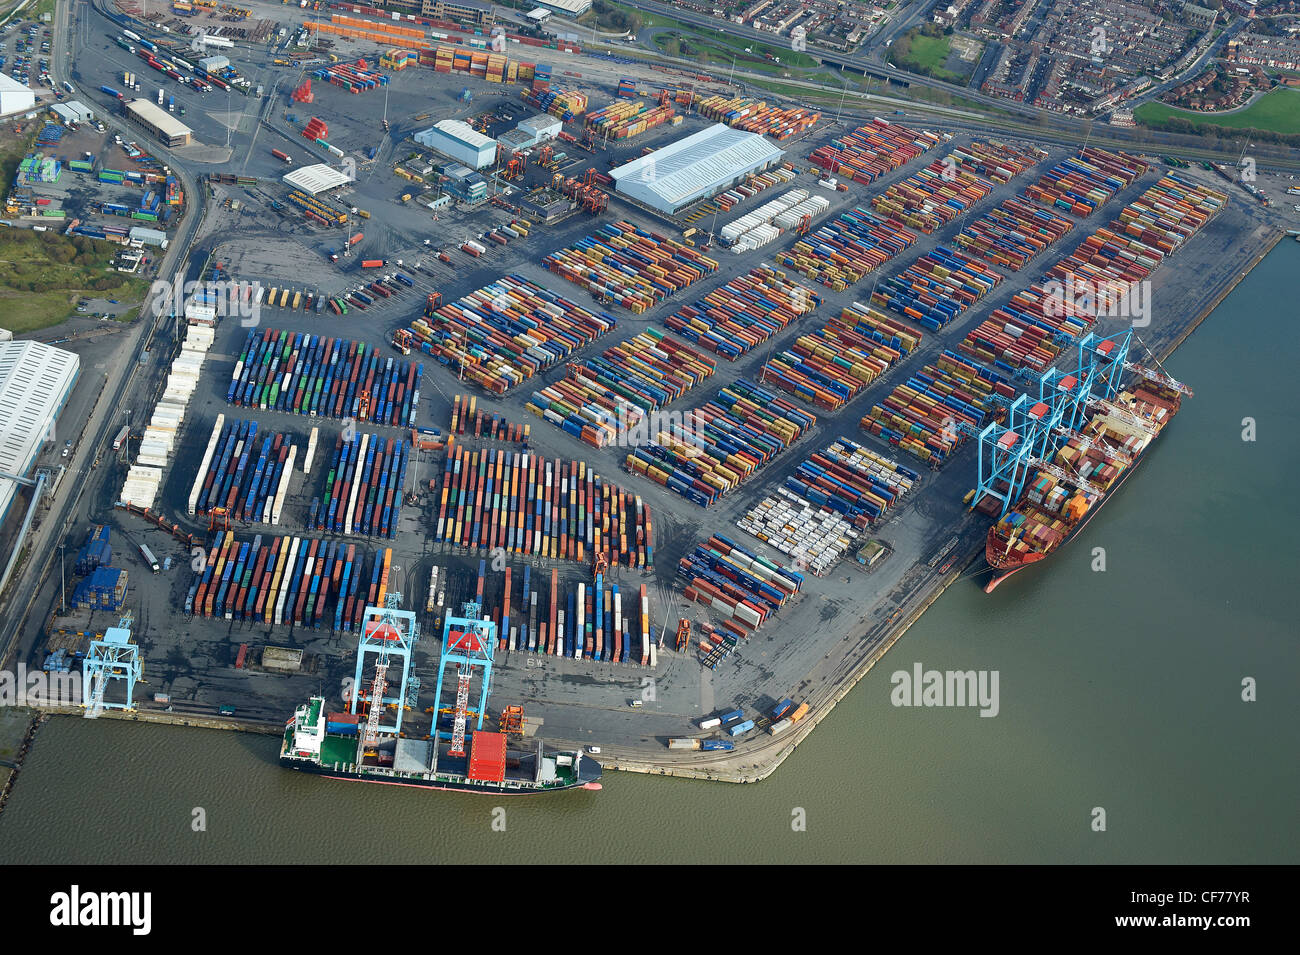 Containers on dockside at Liverpool Docks, Merseyside, North West England - Stock Image